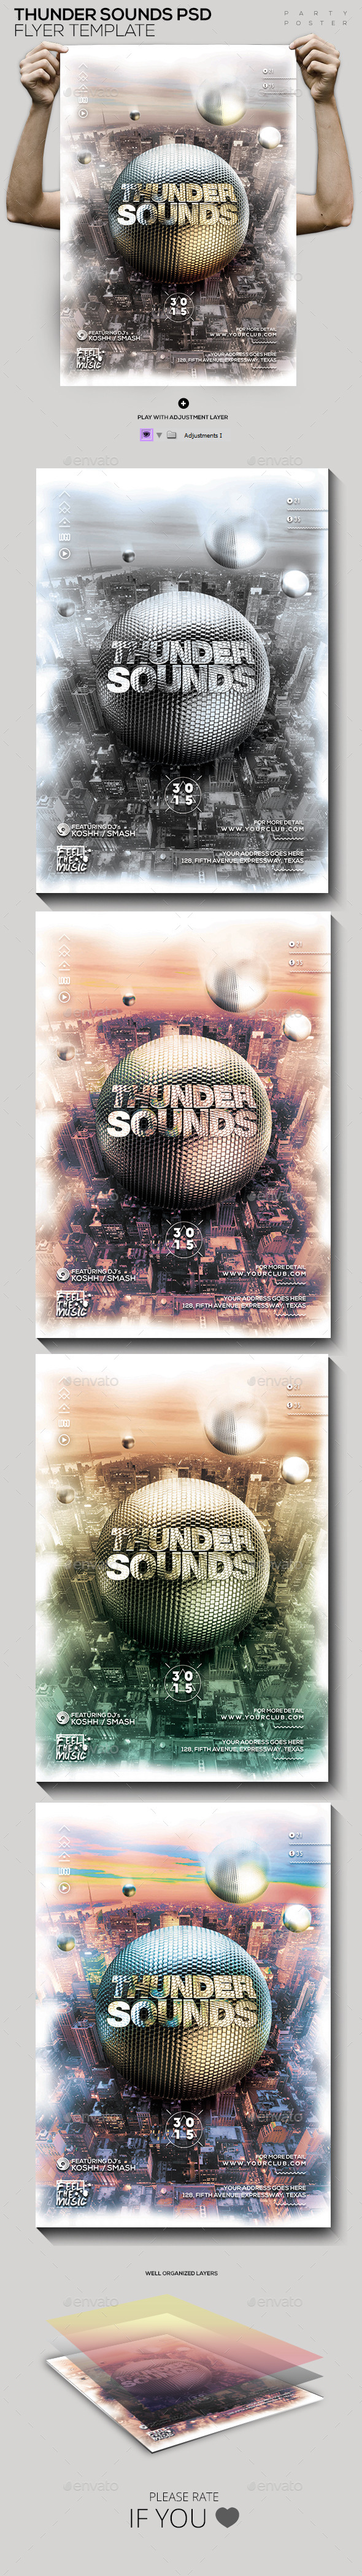 Thunder Sounds PSD Template - Events Flyers